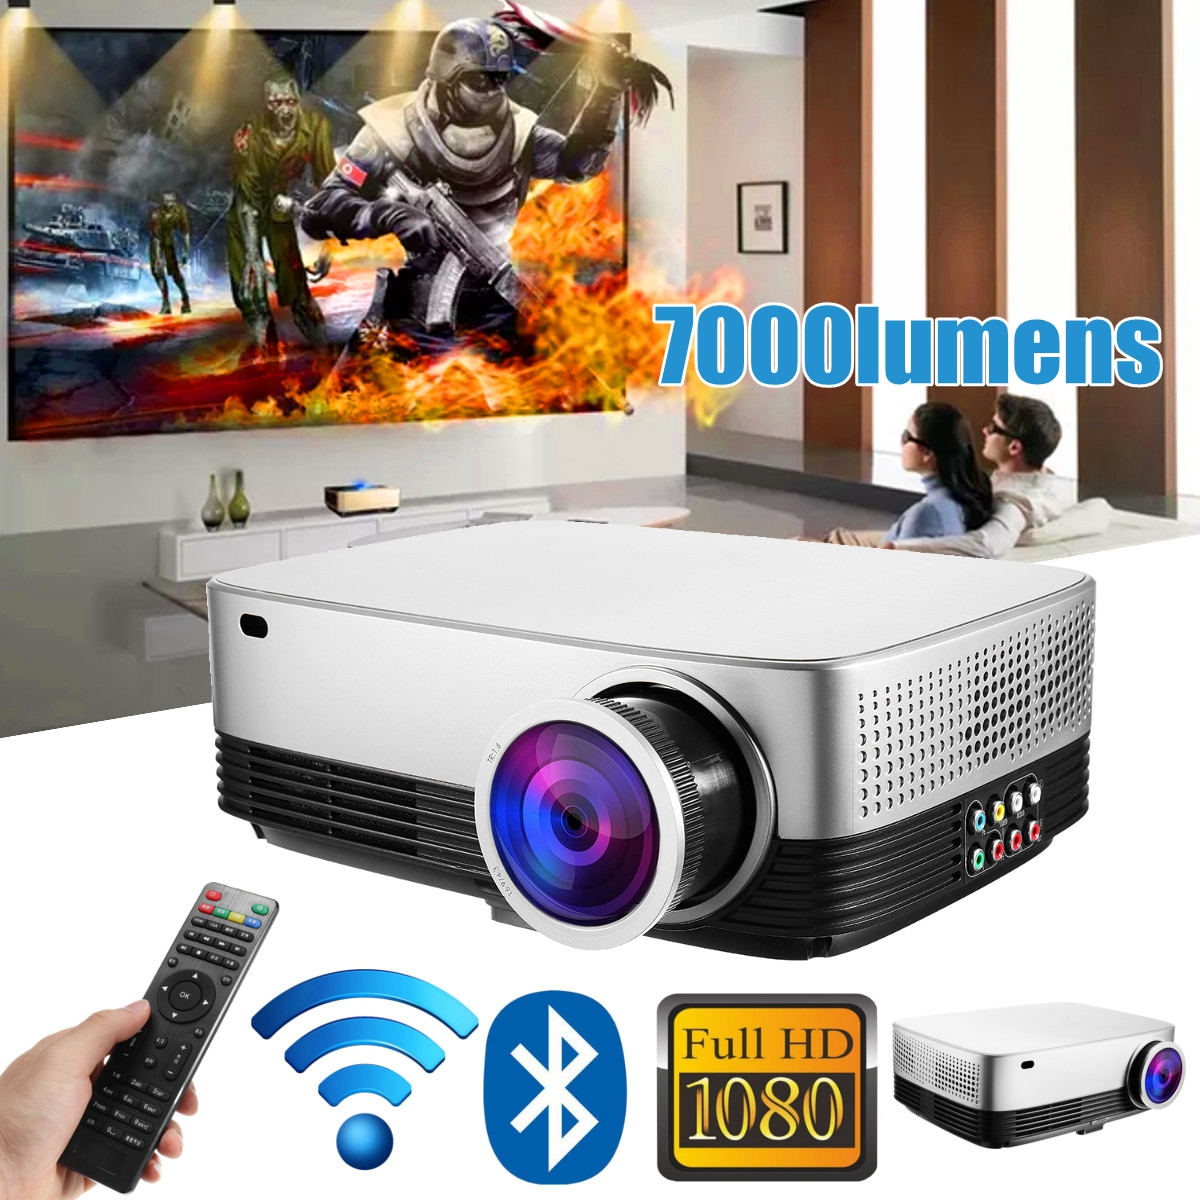 Portable LCD Projector Home Cinema Theater Movie wifi Bluetooth LED Proyector HD Mini Projectors Support 1080P 7000 Lumens otha gm60 1000 lumens mini led projector for hd video games tv home theater movie support hdmi vga av sd portable proyector